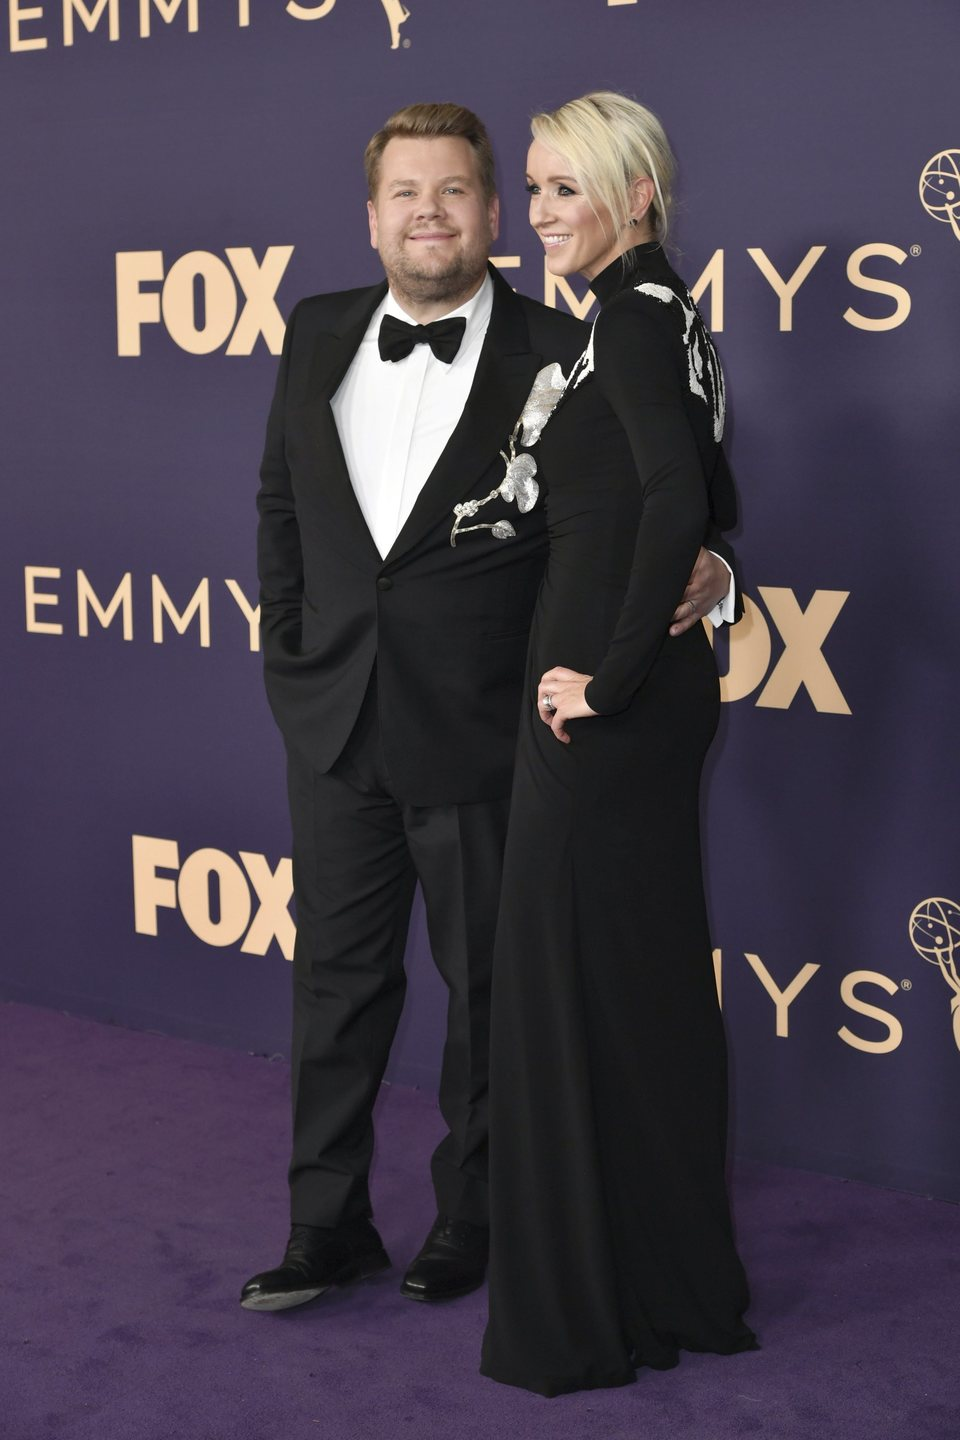 James Corden at the Emmy 2019 red carpet